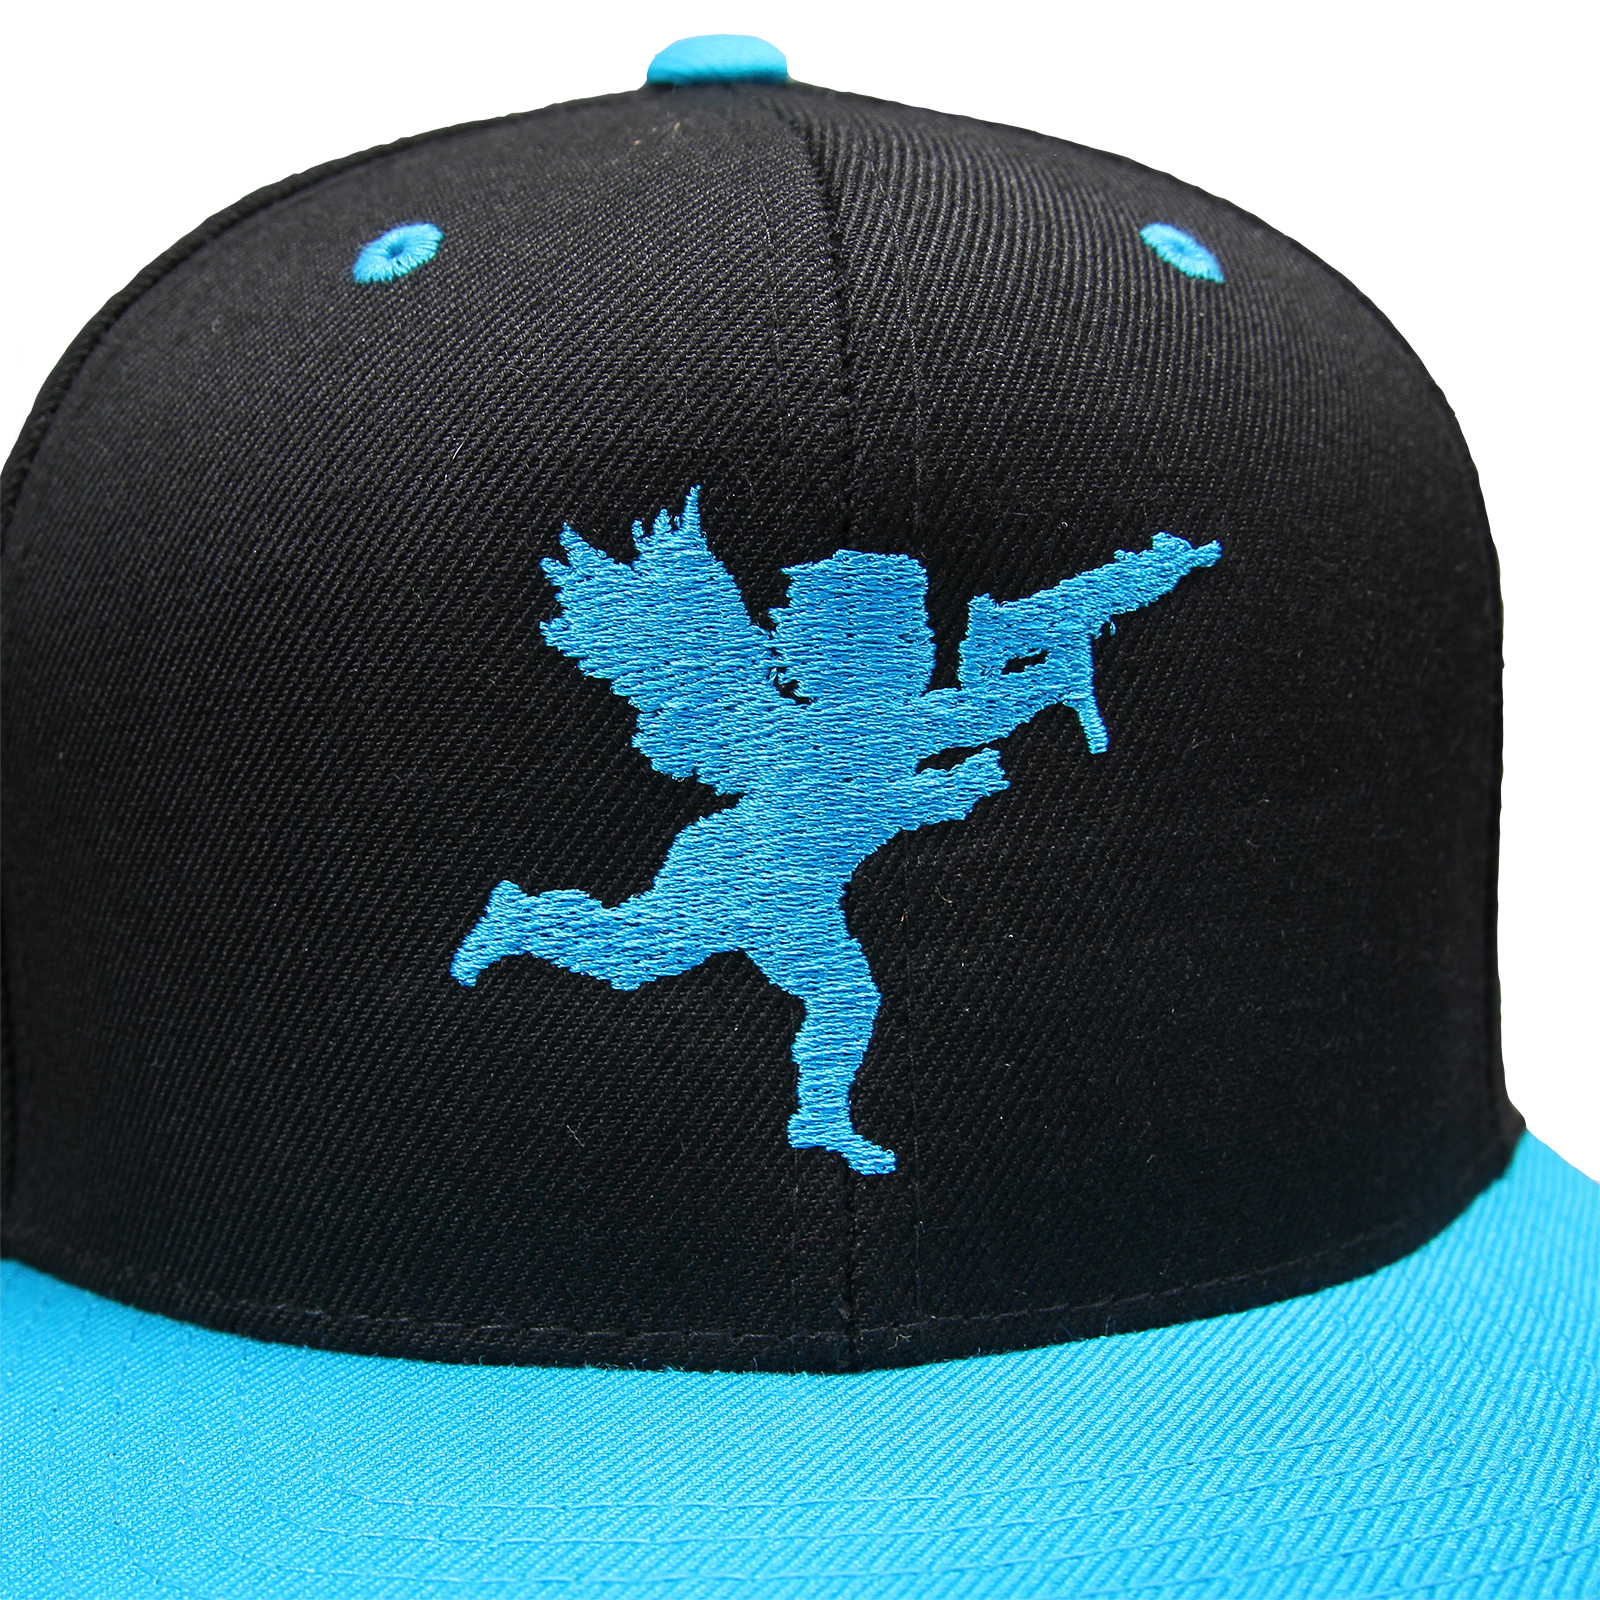 Cupid on Black/Teal Snapback